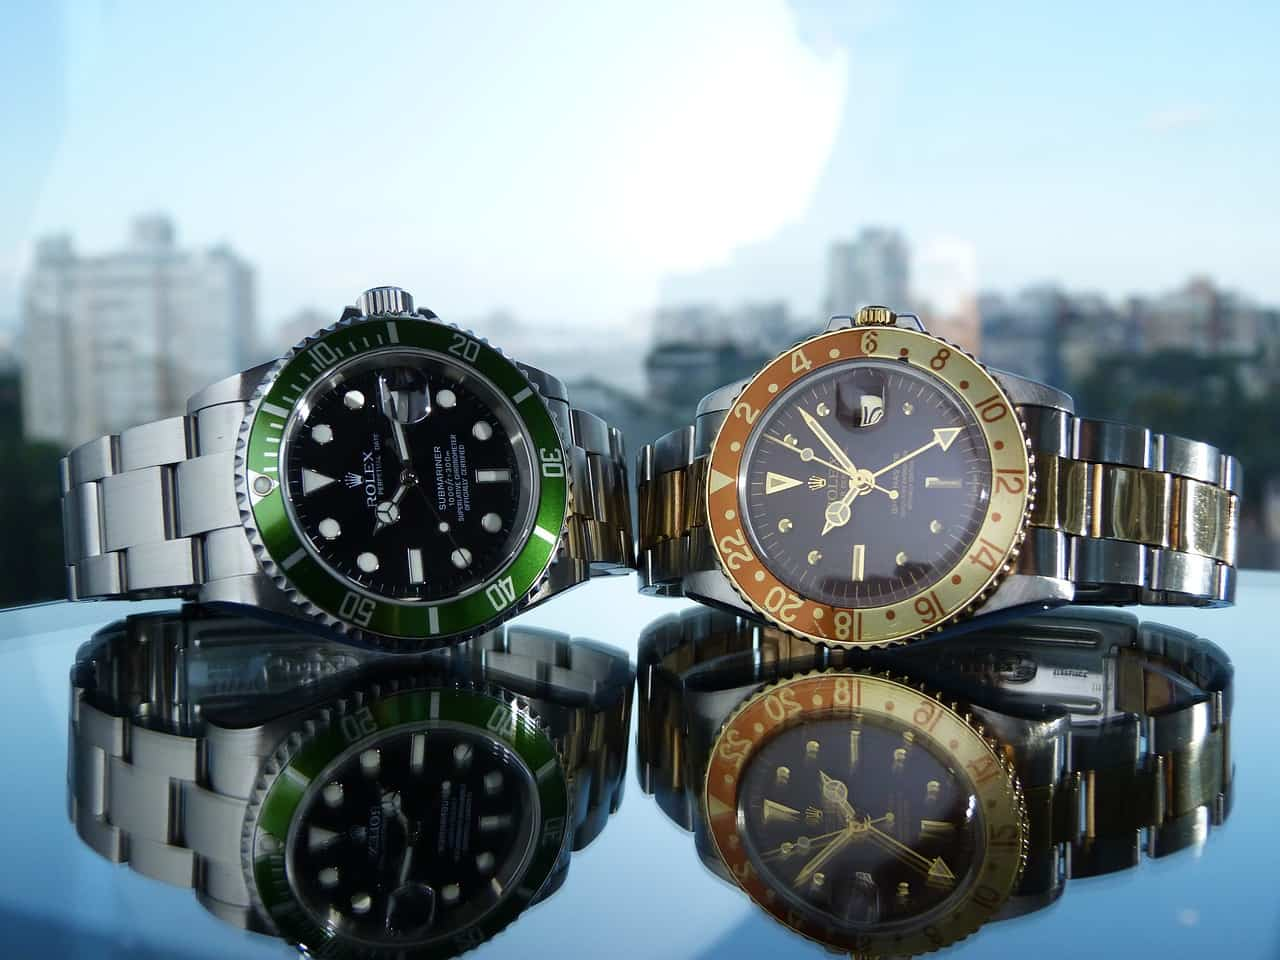 Reebonz Singapore_Luxury goods_watches